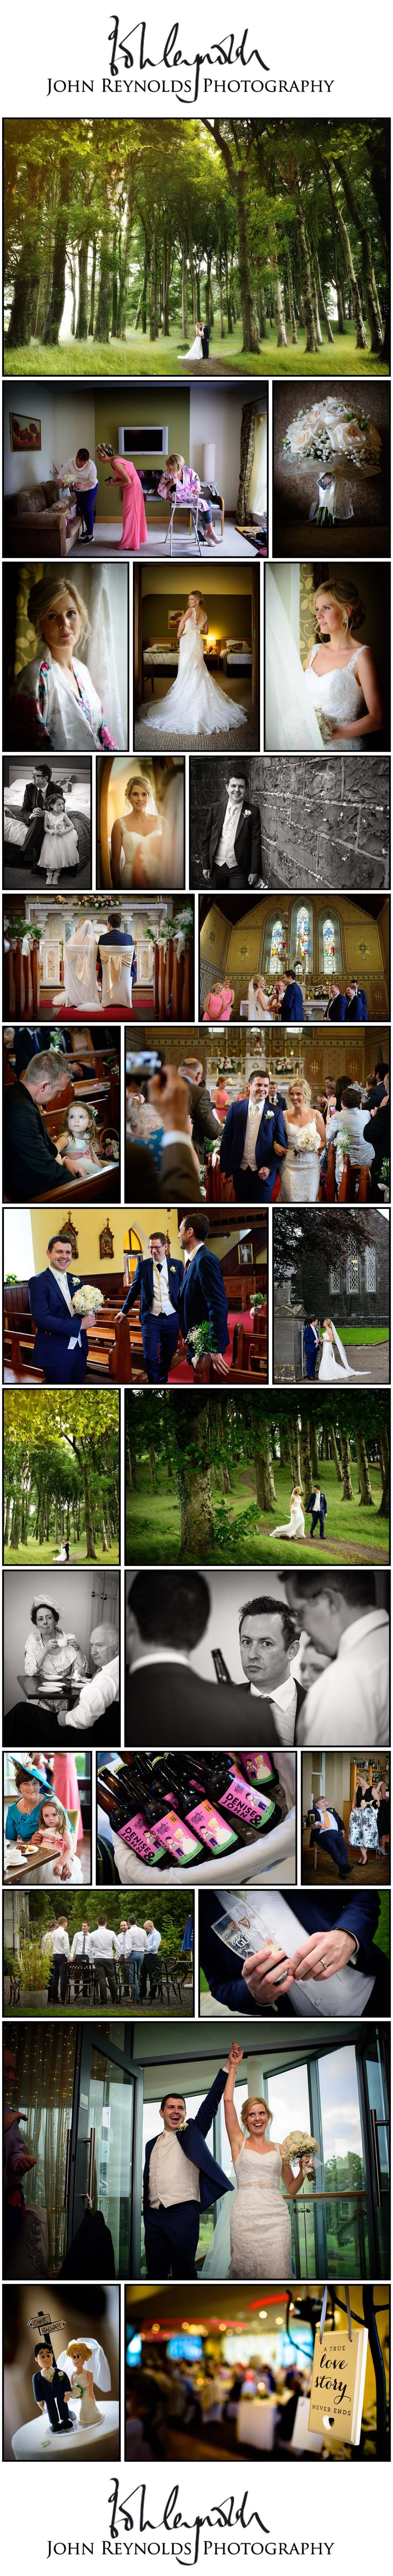 Blog Collage-Denise & John